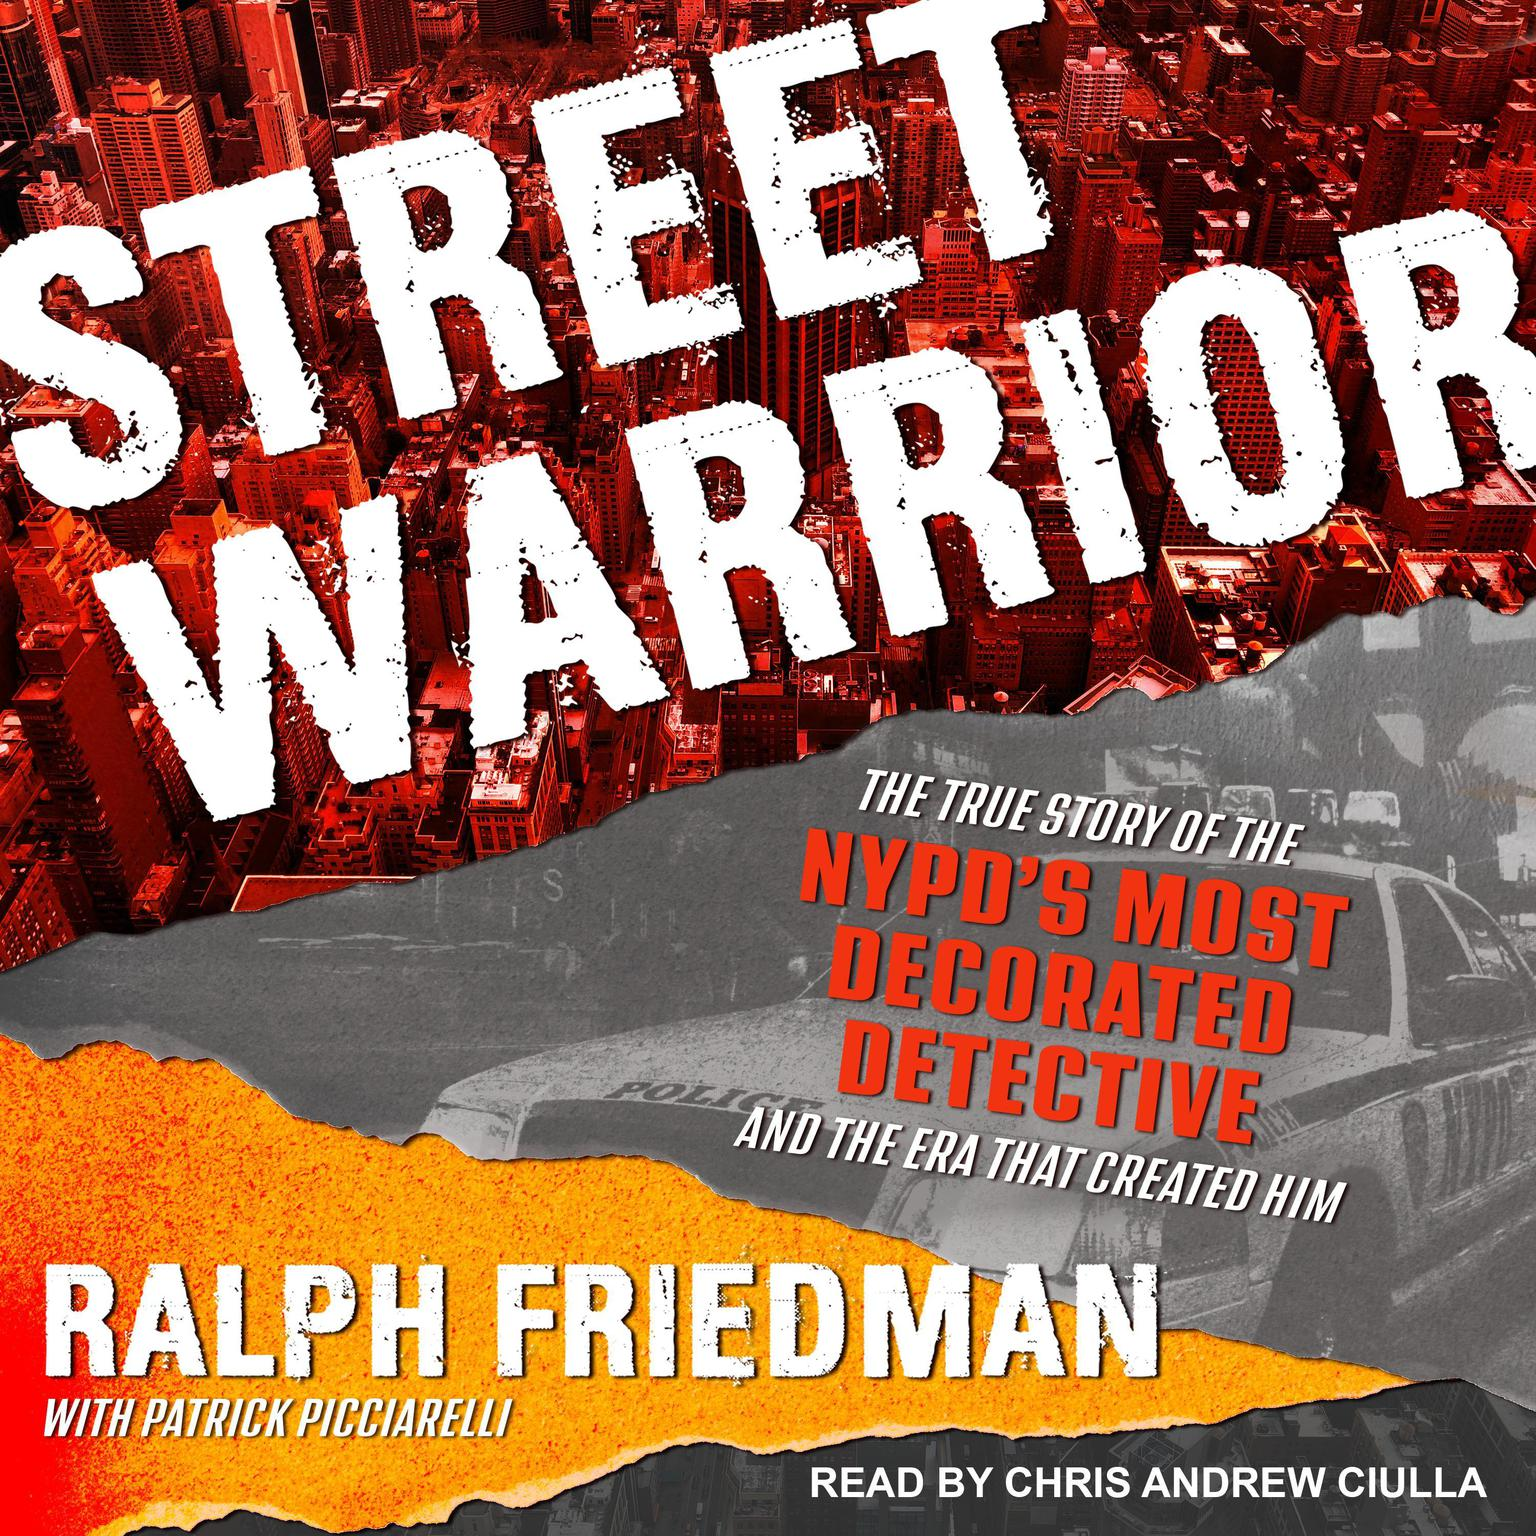 Printable Street Warrior: The True Story of the NYPD's Most Decorated Detective and the Era That Created Him Audiobook Cover Art